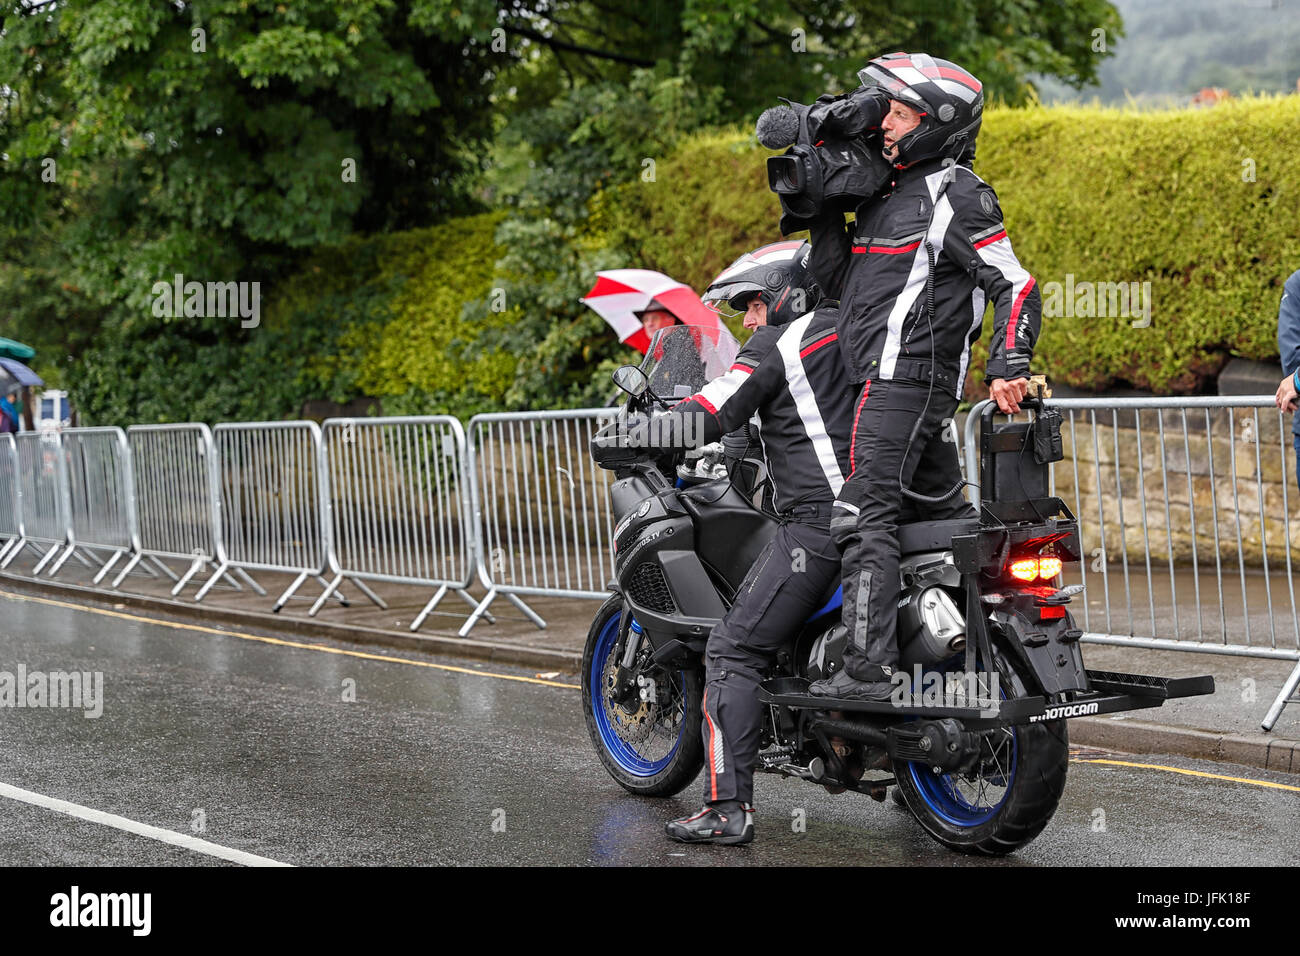 Motorcycle cameramen filming Otley Cycle race - Stock Image